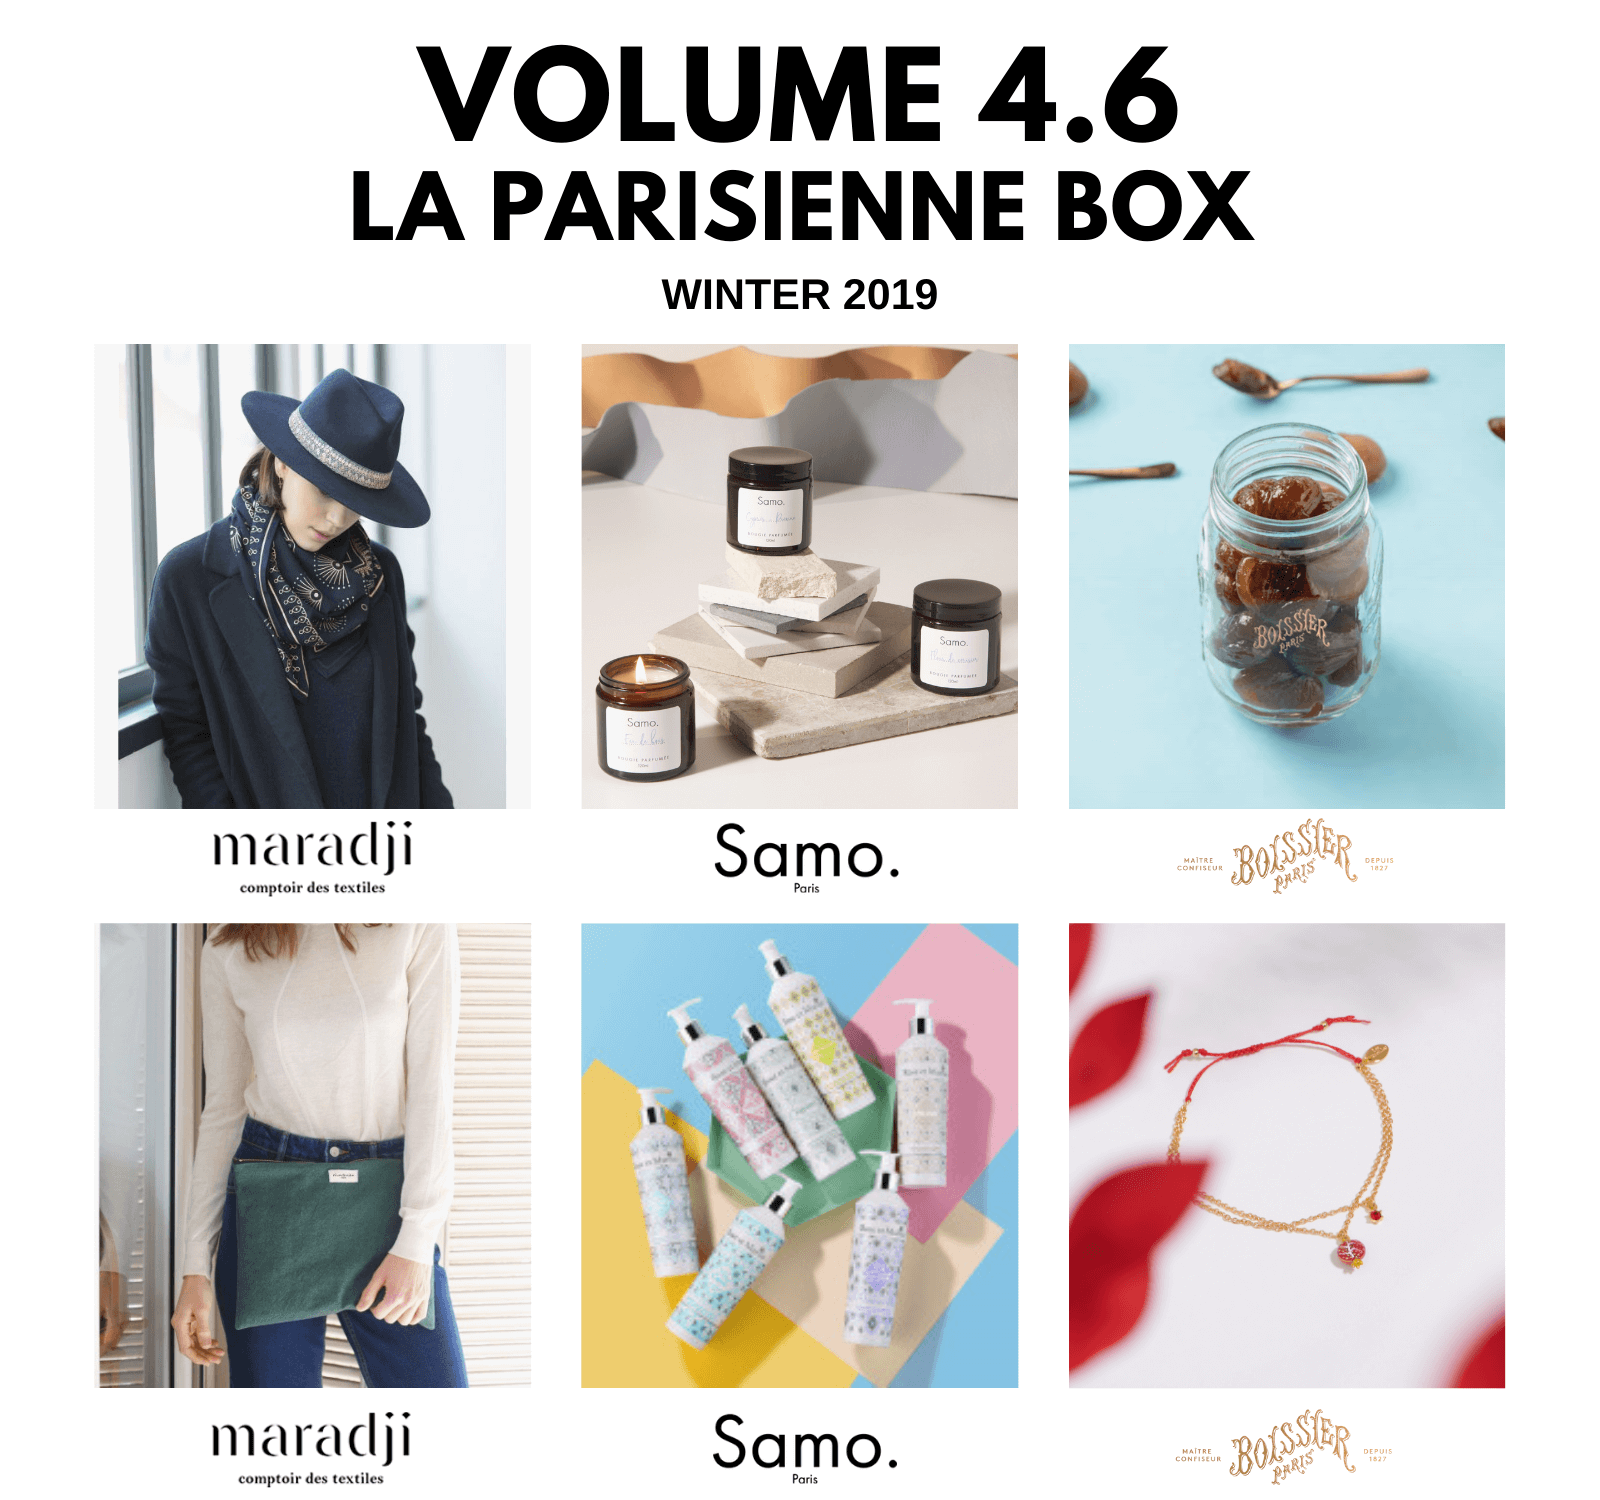 V4.6 Box: hat, candle, bracelet, clutch